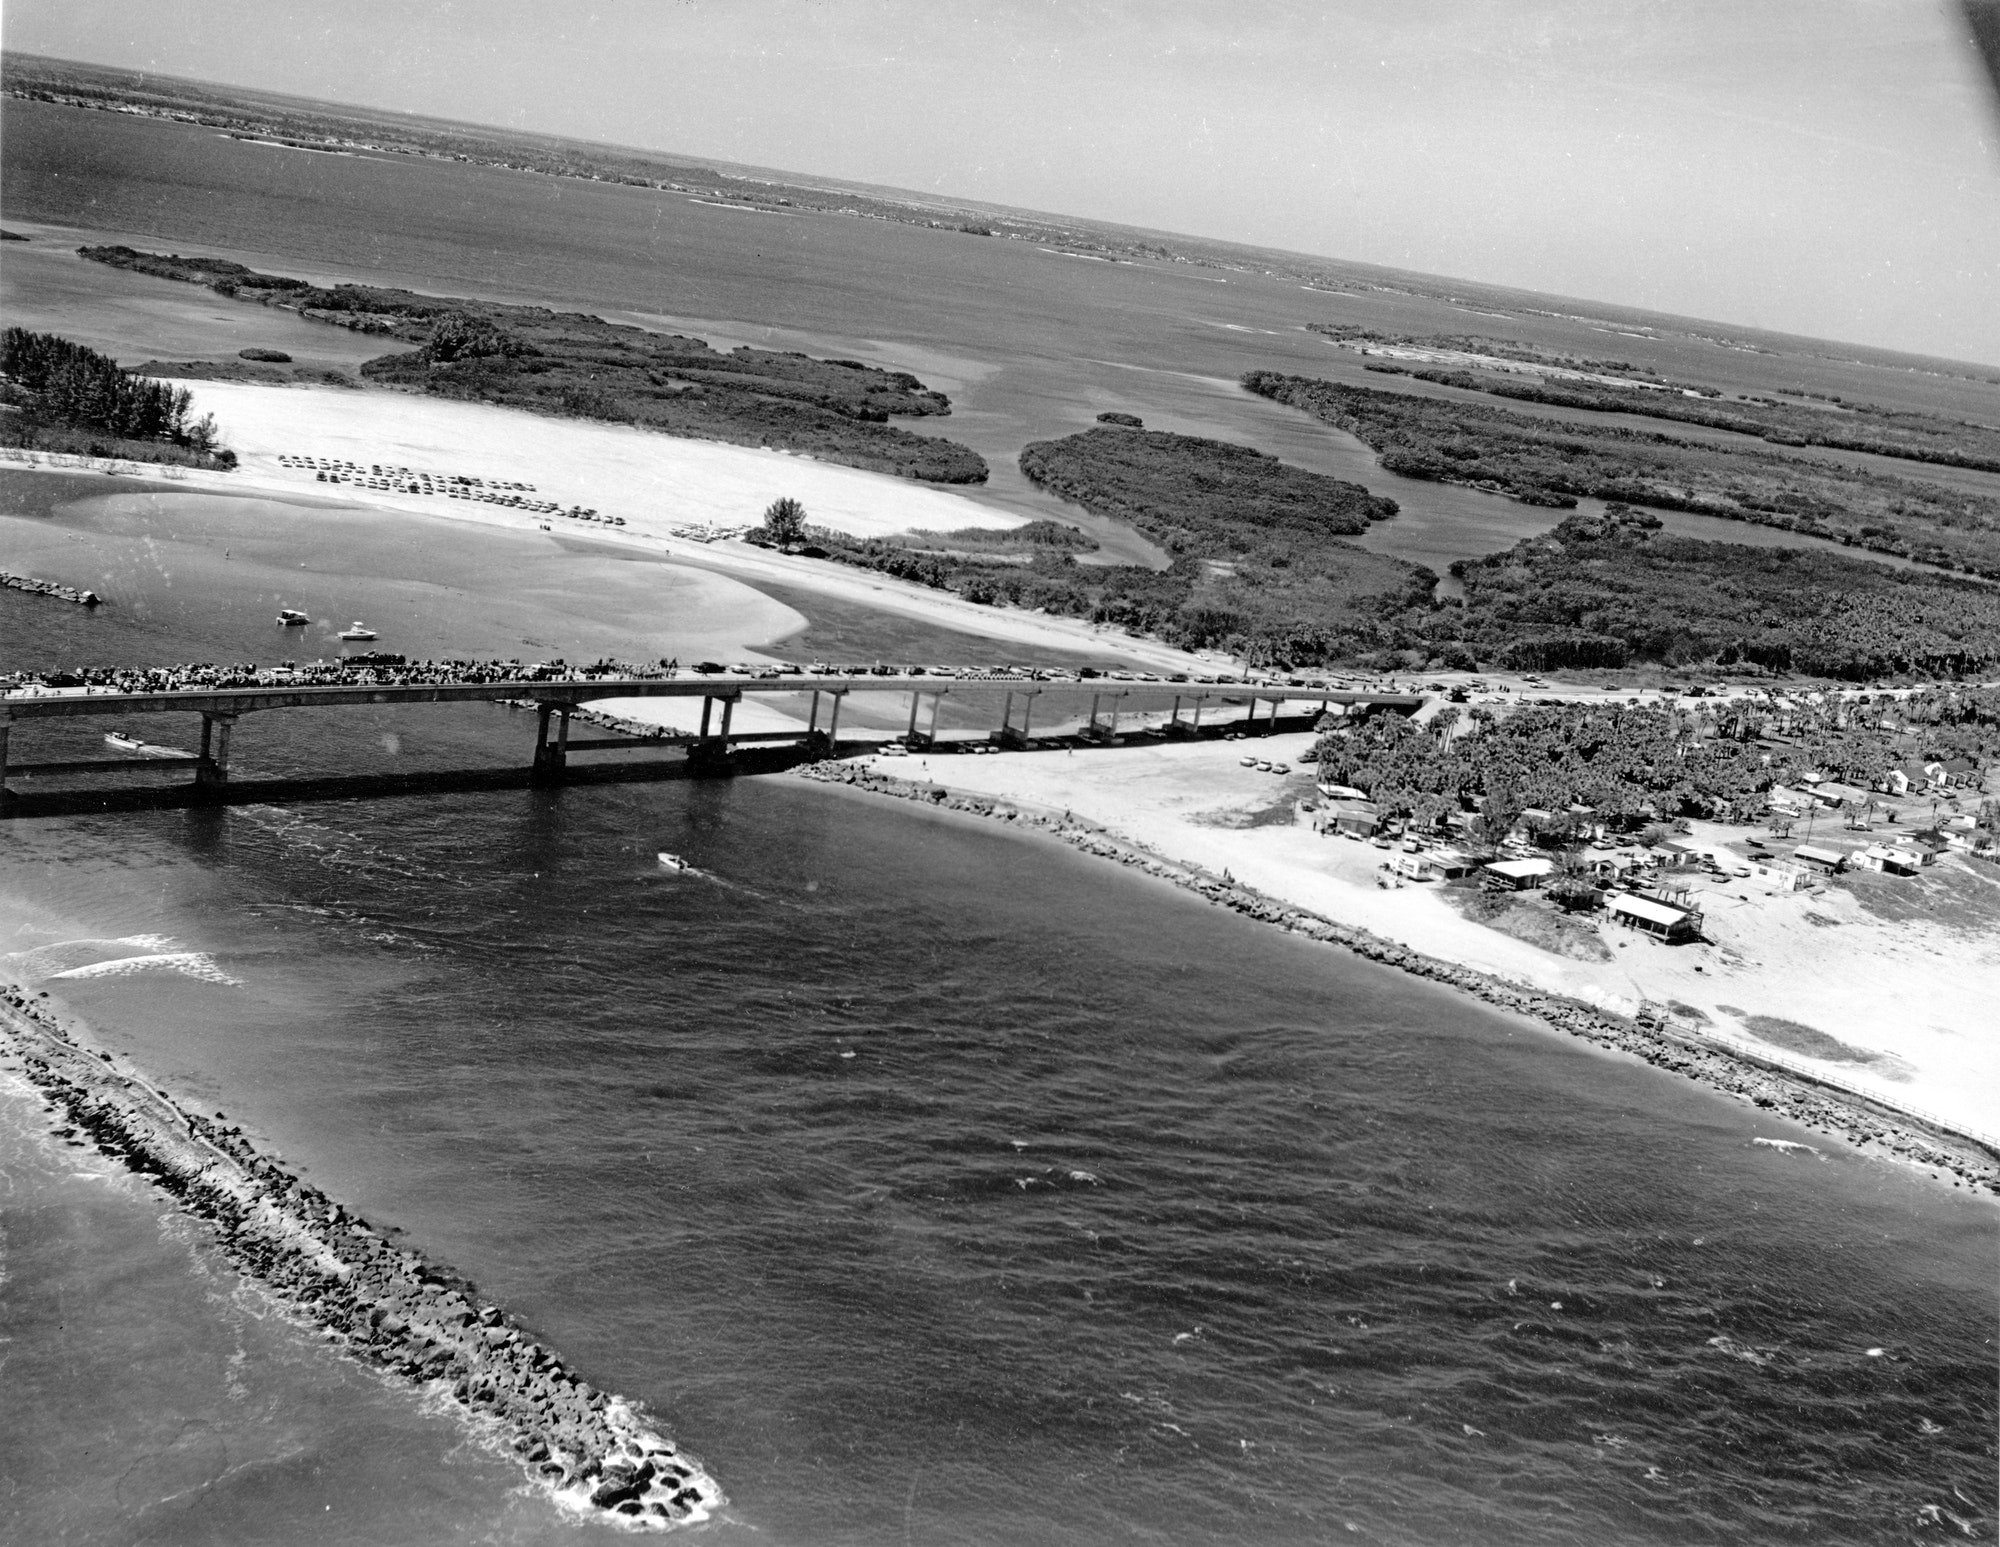 aerial view of completed bridge over Sebastian Inlet, looking Northwest, on opening day with people lining the bridge